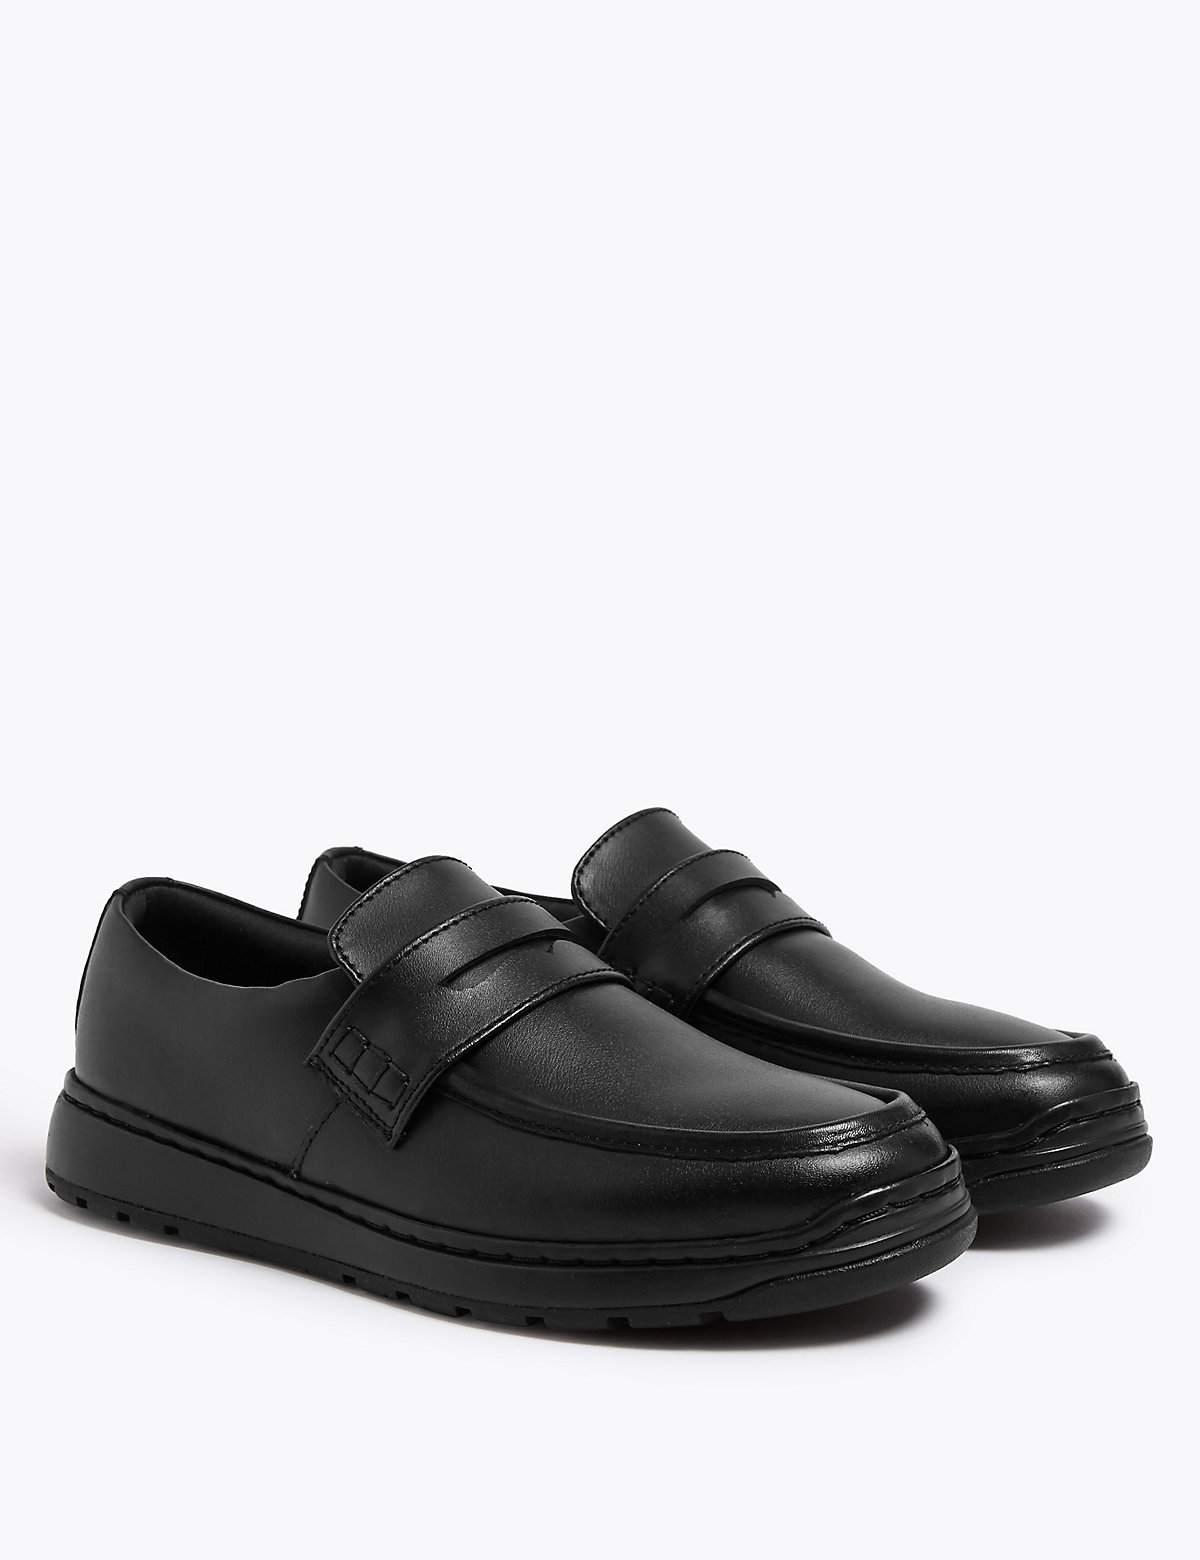 Light As Air Kids' Leather Slip On Loafers School shoes (13 Small - 9 Large)